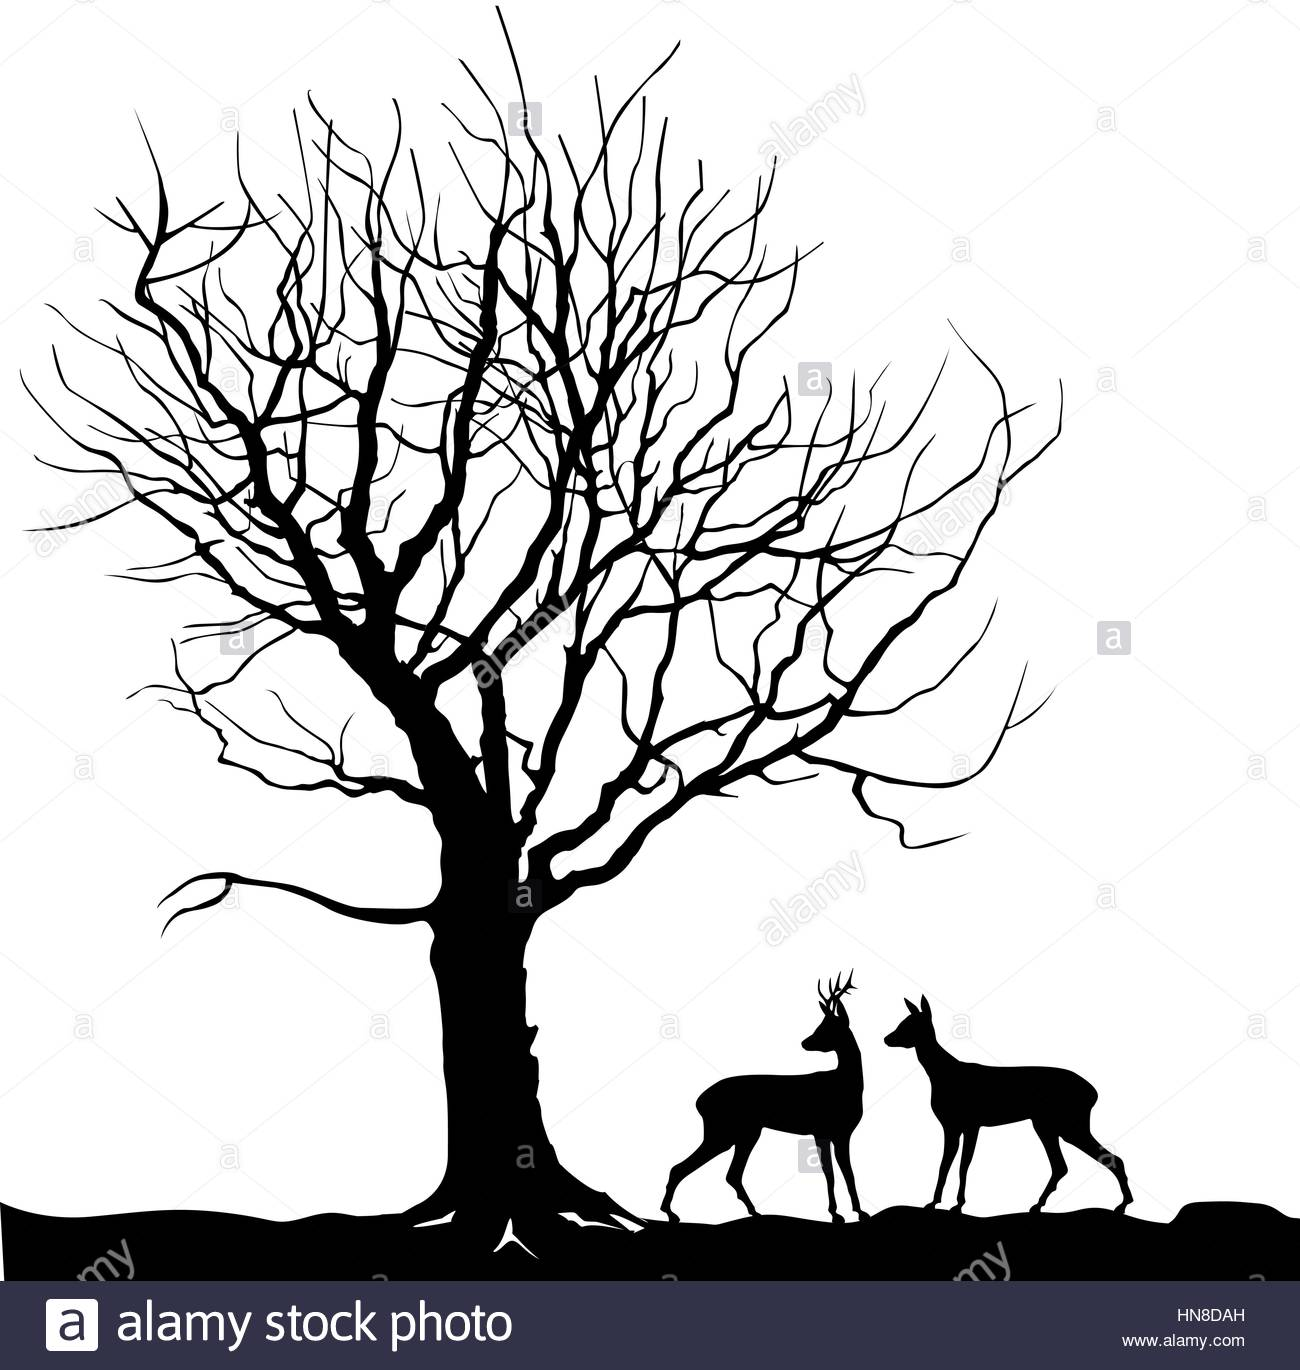 1300x1370 Animal Over Tree Forest Landscape With Deer. Abstract Vector Stock